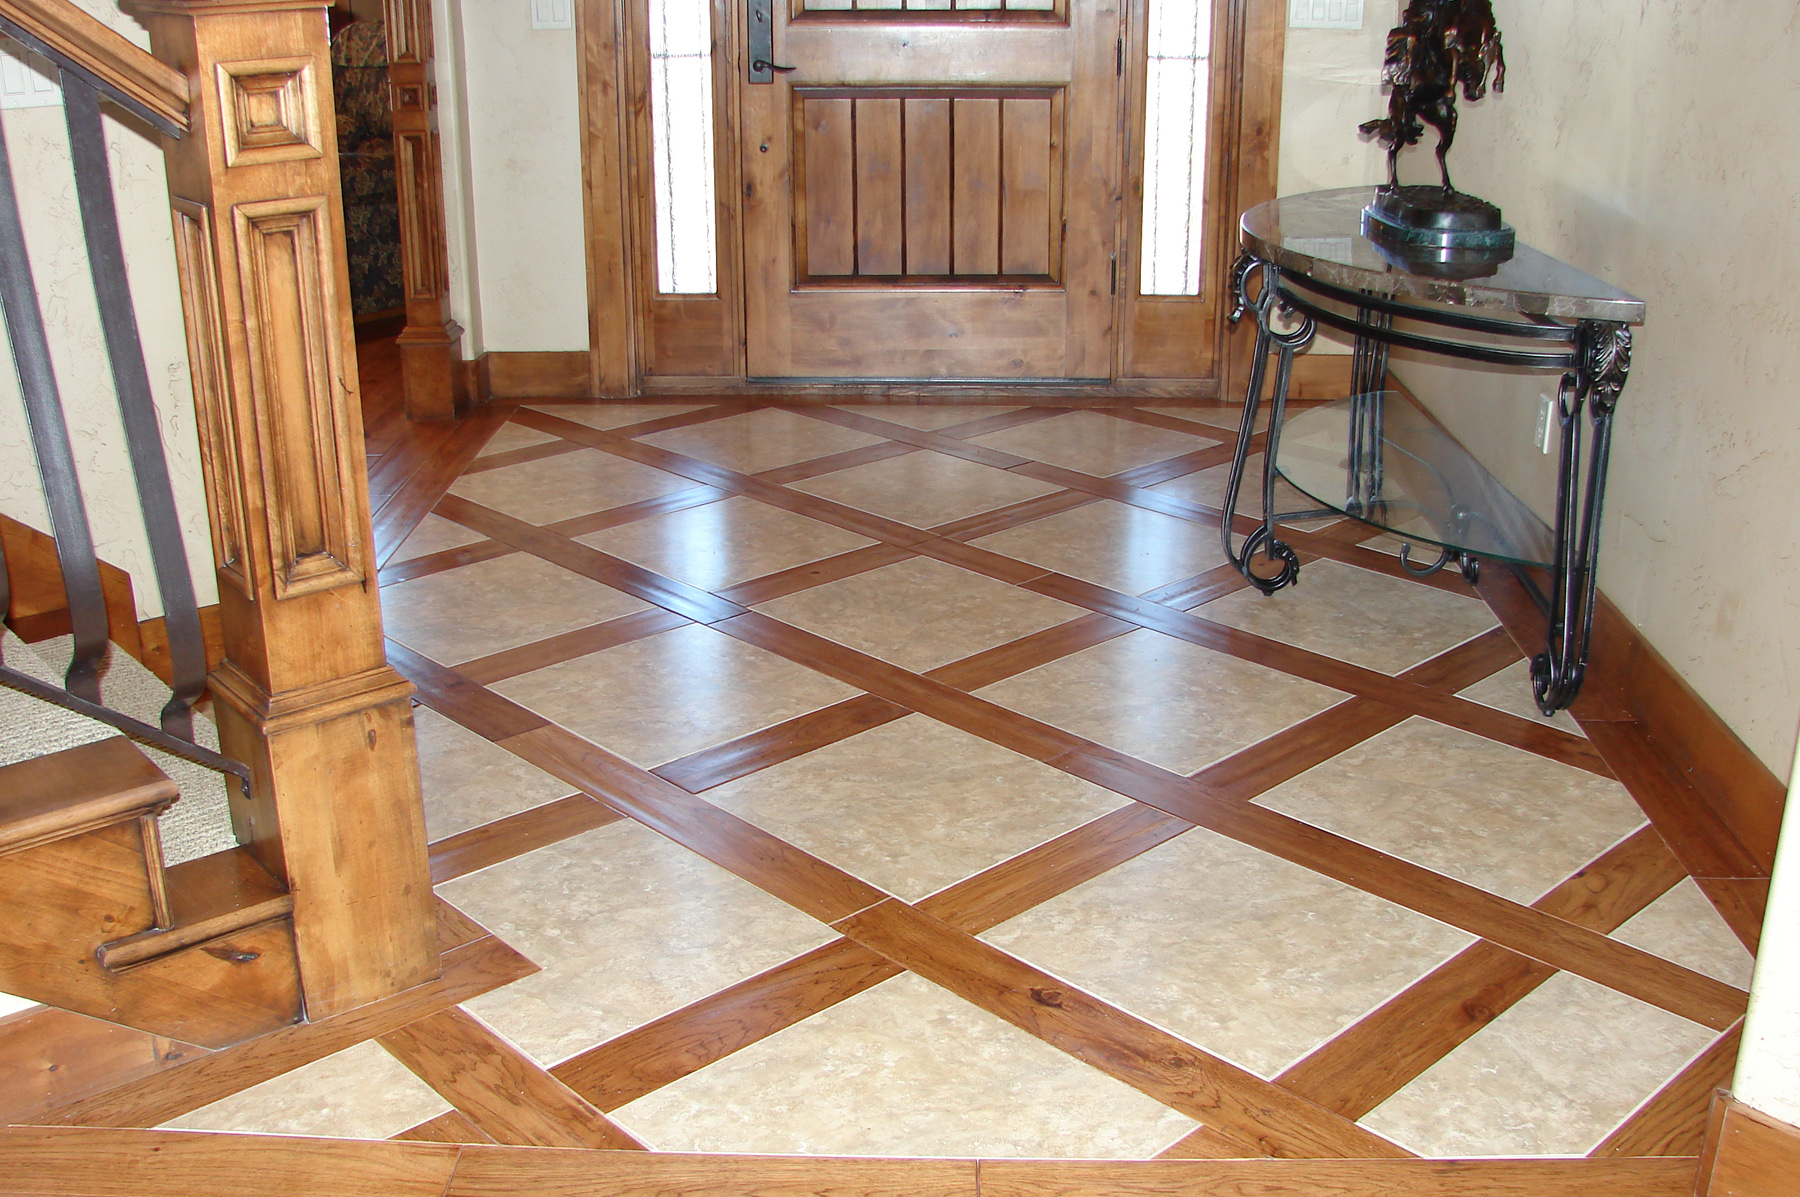 Carsons custom hardwood floors utah hardwood flooring other hardwood floor with tile 3 dailygadgetfo Choice Image